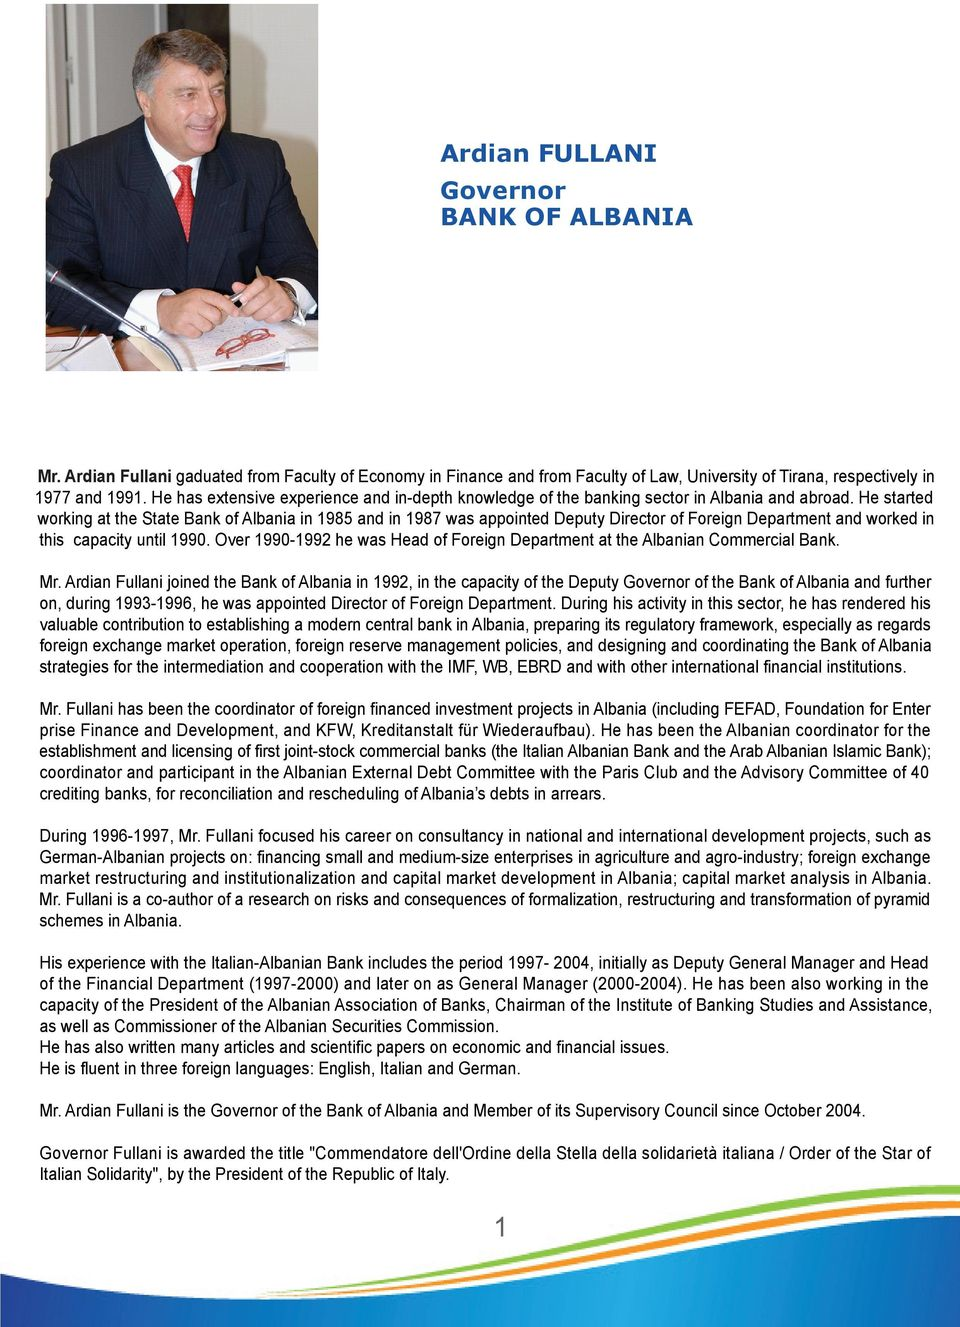 He started working at the State Bank of Albania in 1985 and in 1987 was appointed Deputy Director of Foreign Department and worked in this capacity until 1990.